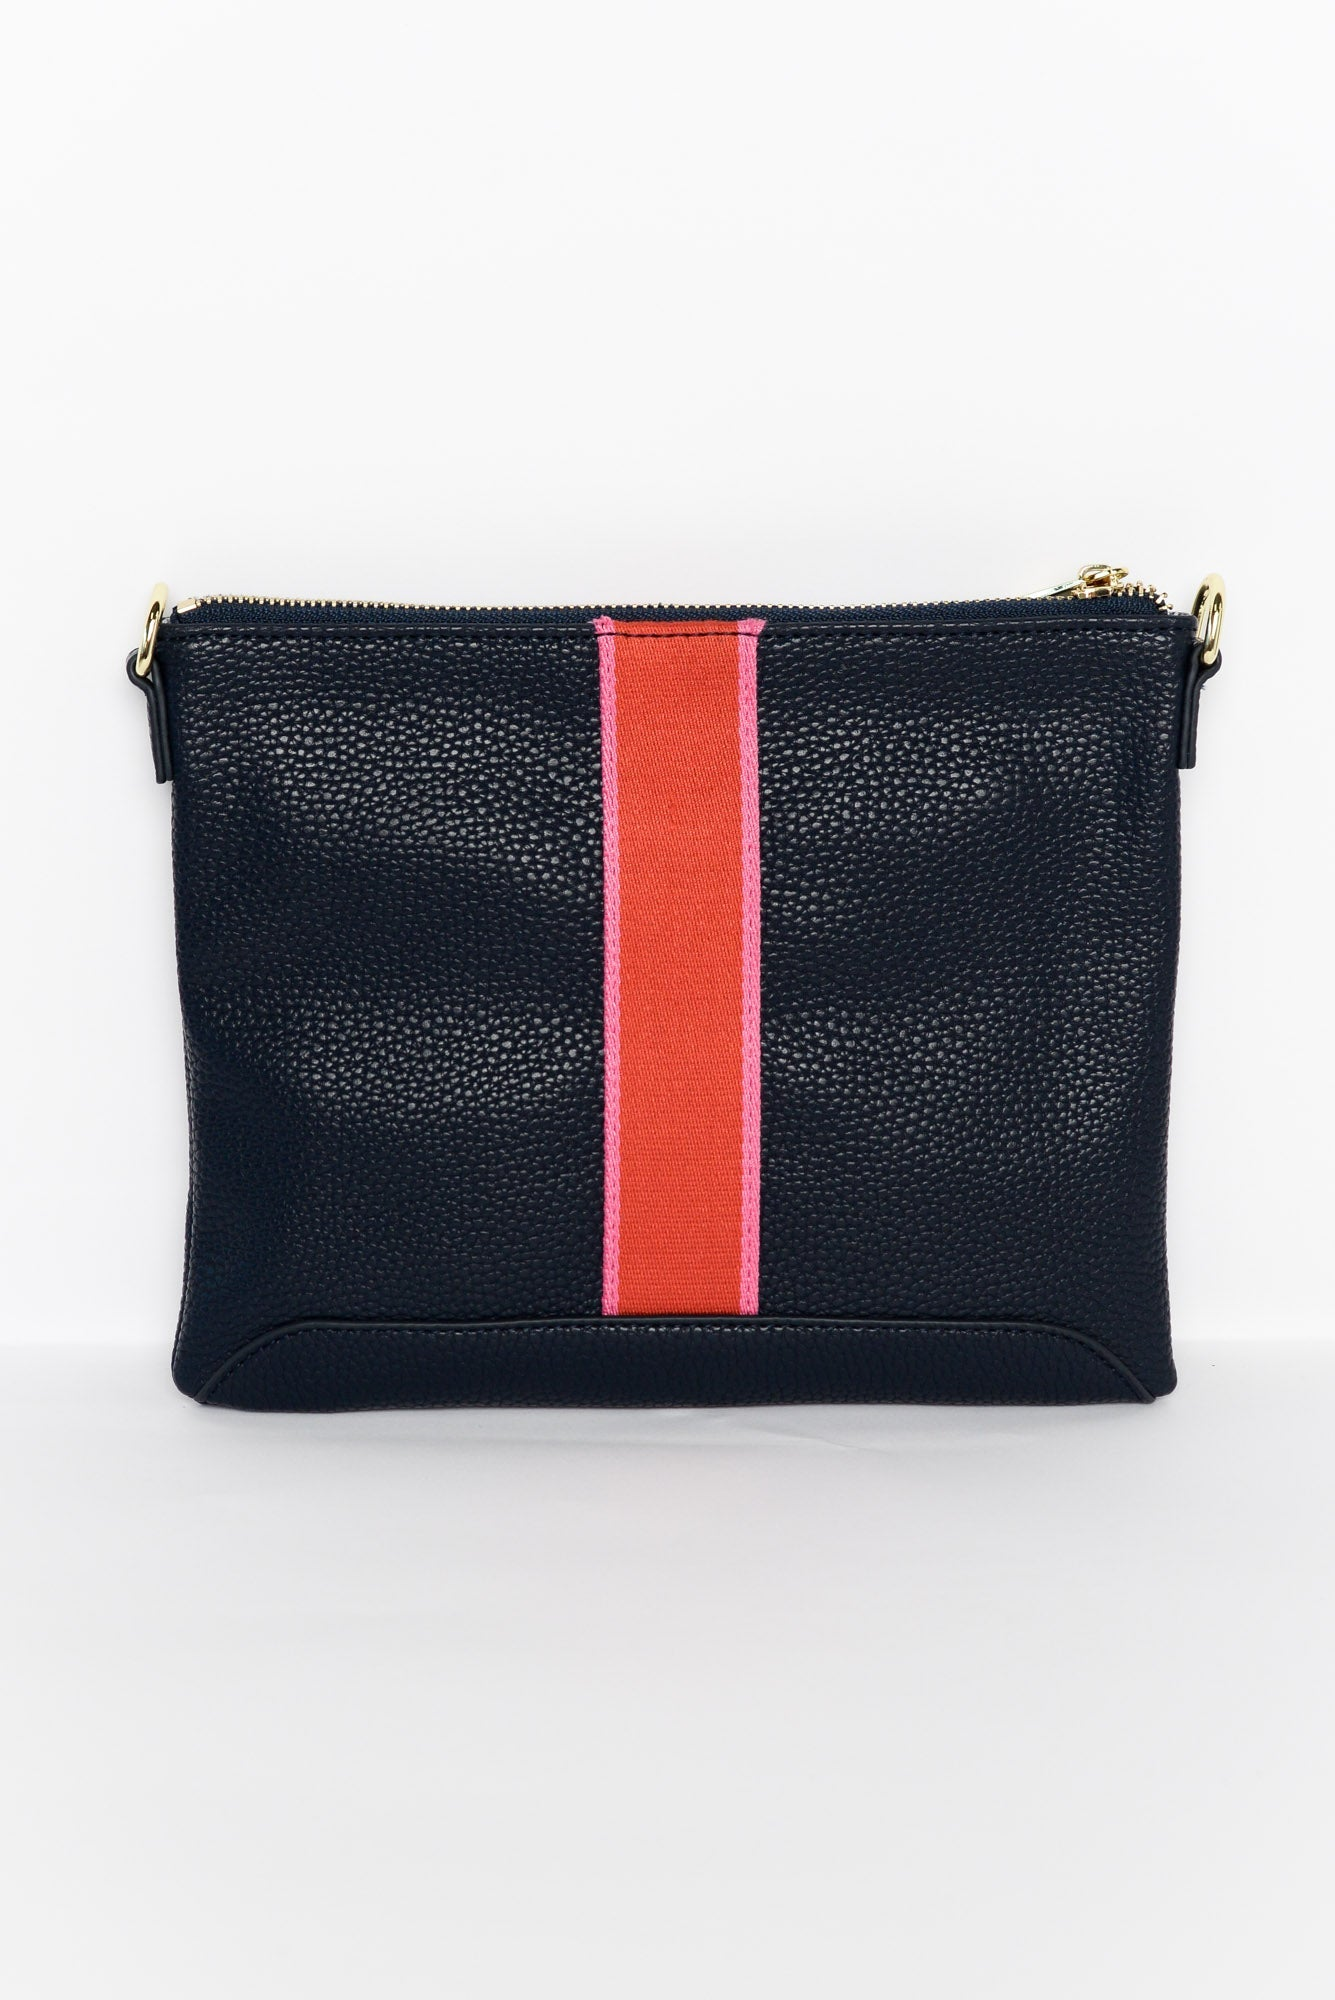 Fairlight Navy Pouch